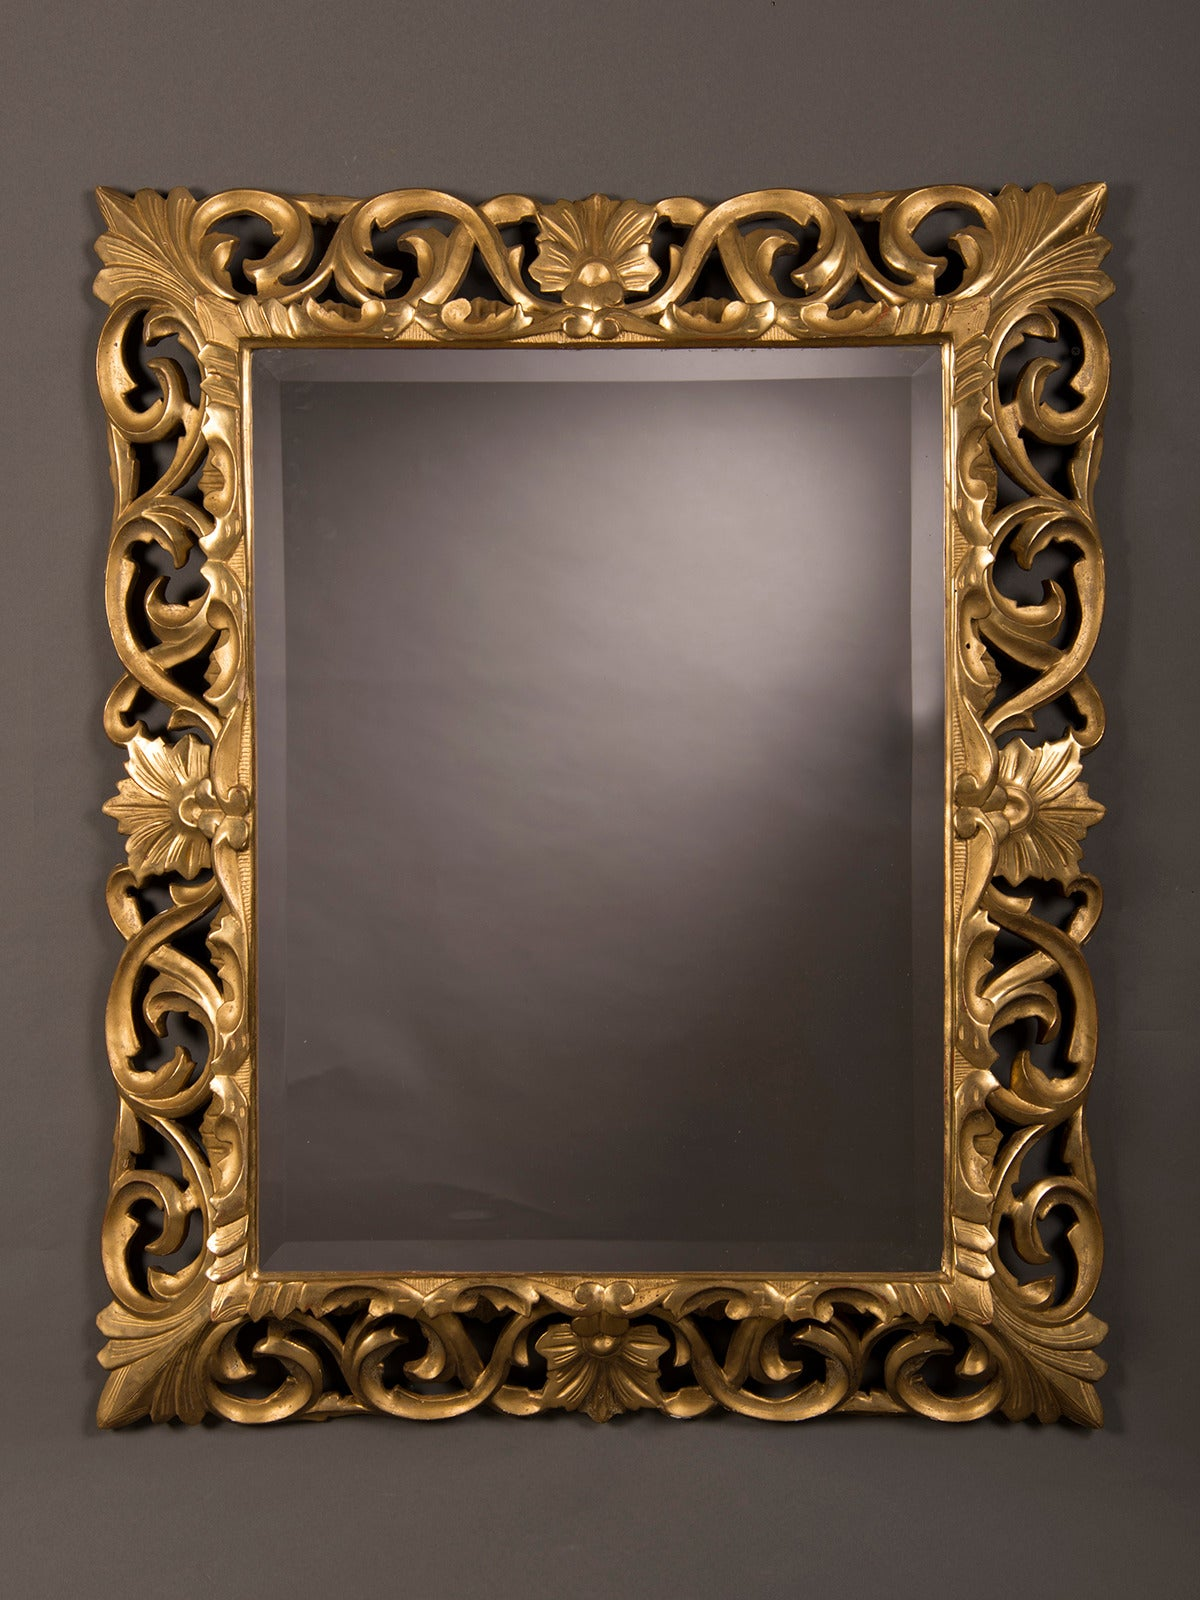 baroque style gold beveled mirror france circa 1875 35 1